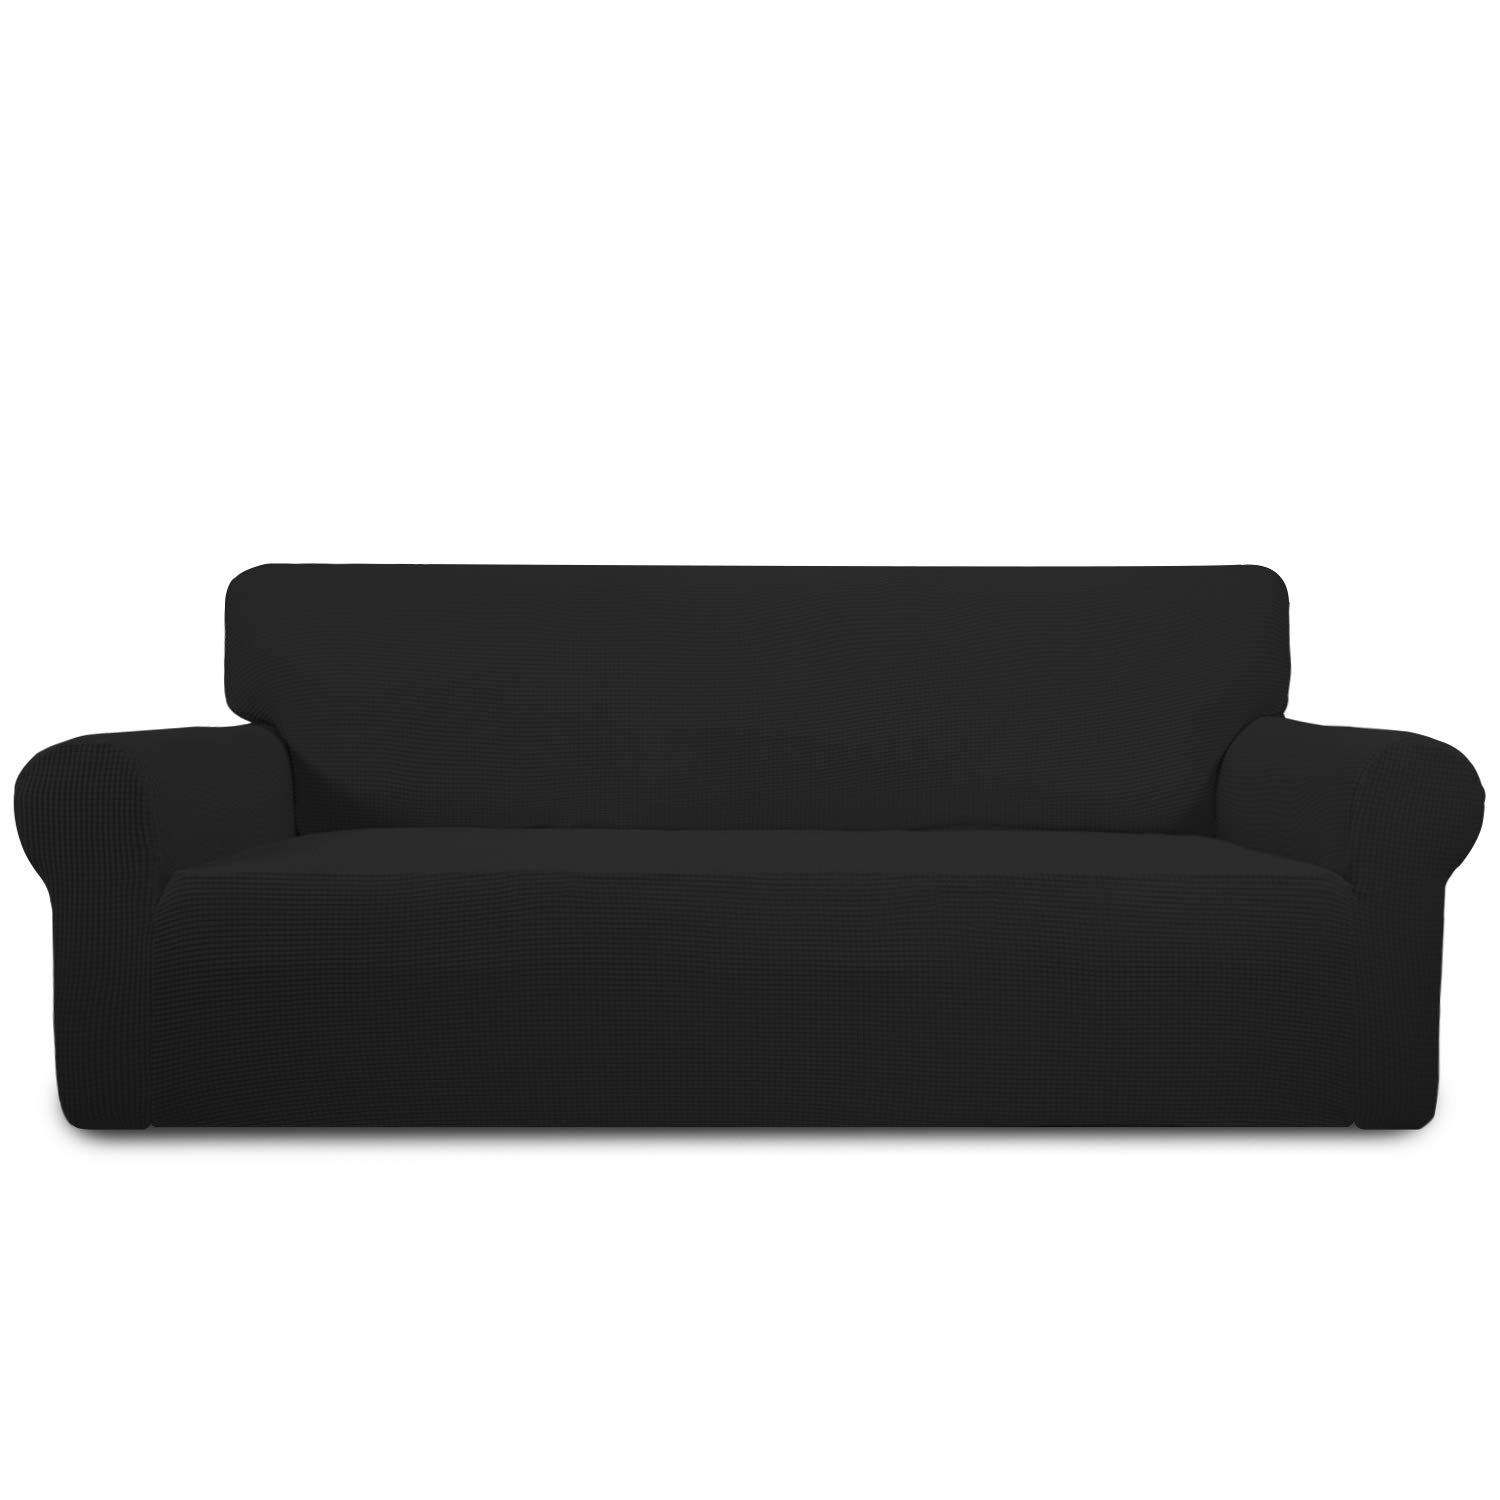 Easy-Going Sofa Covers, Furniture Protector with Elastic Bottom, Anti-Slip Foams 1 Piece Couch Shield, Polyester Spandex Jacquard Fabric Small Checks, Black